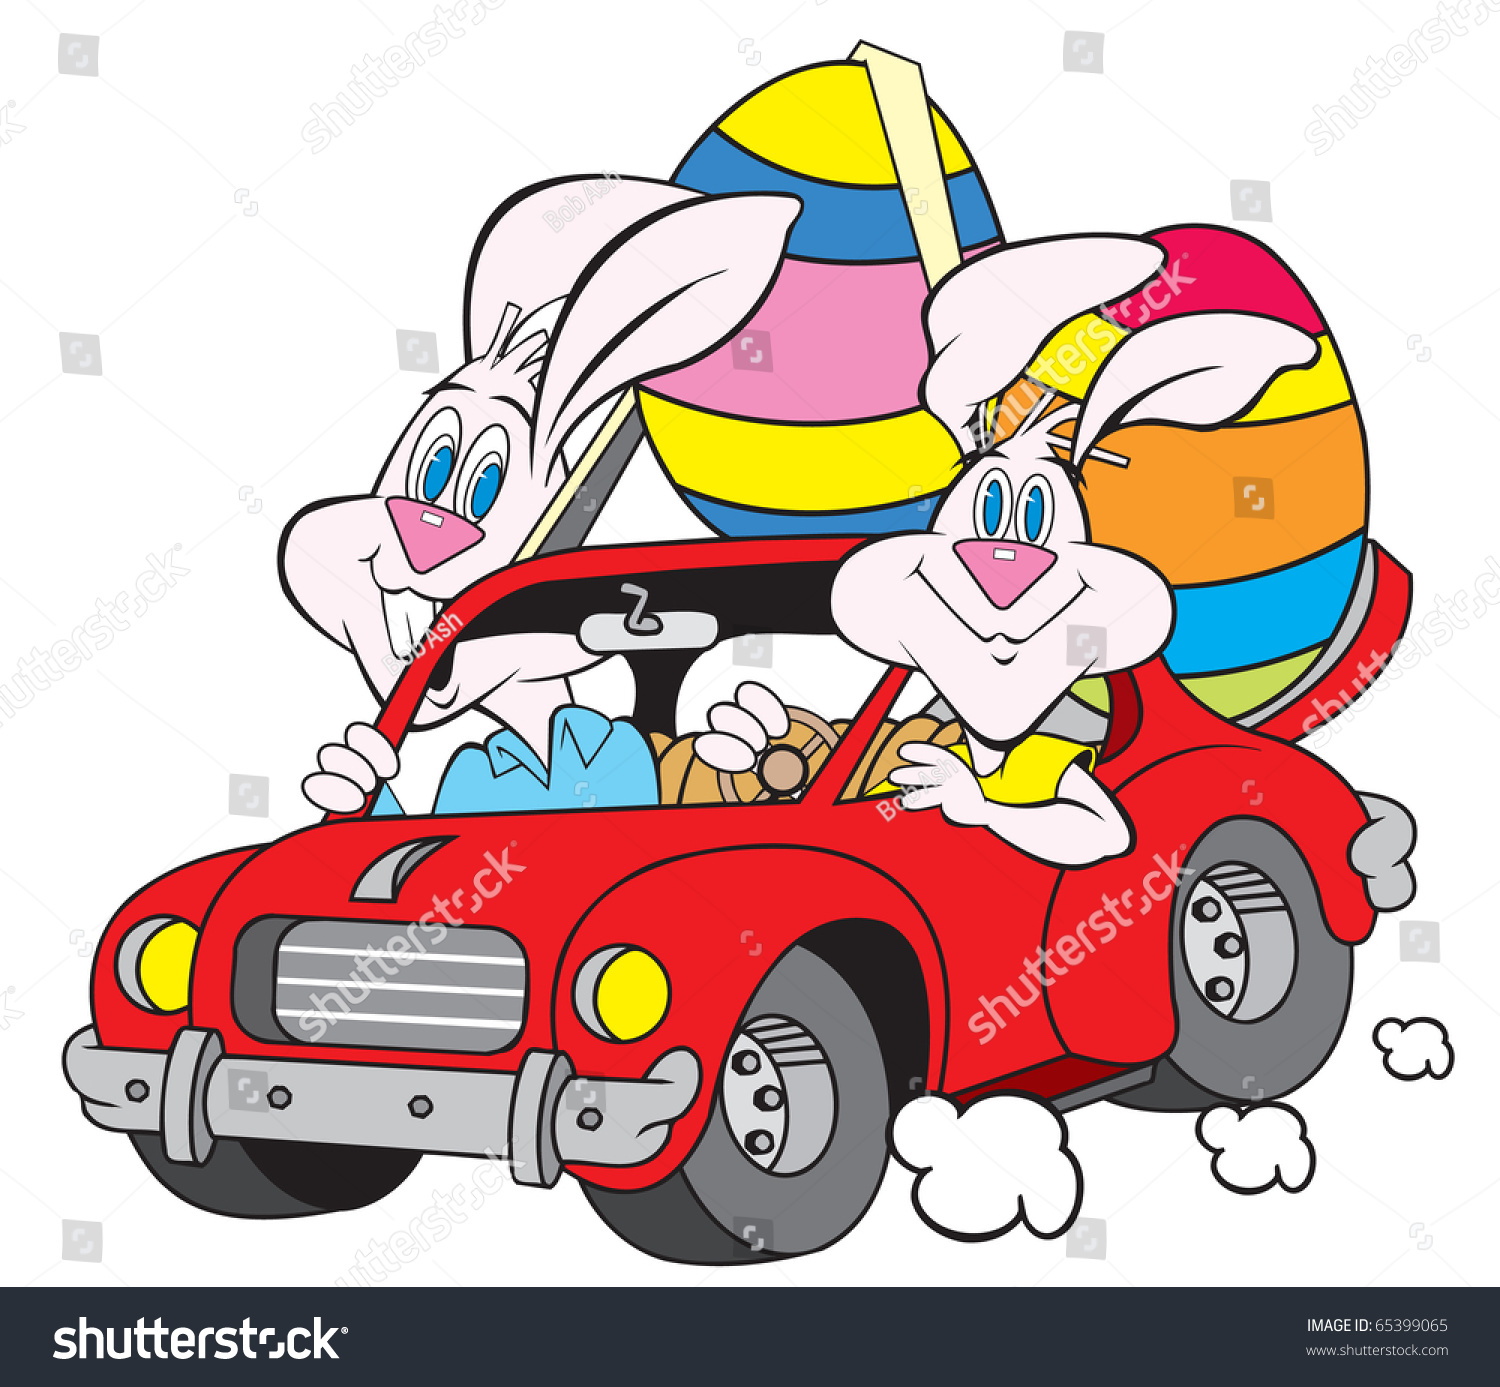 Easter Bunny Reese S Egg Cars: DriverLayer Search Engine